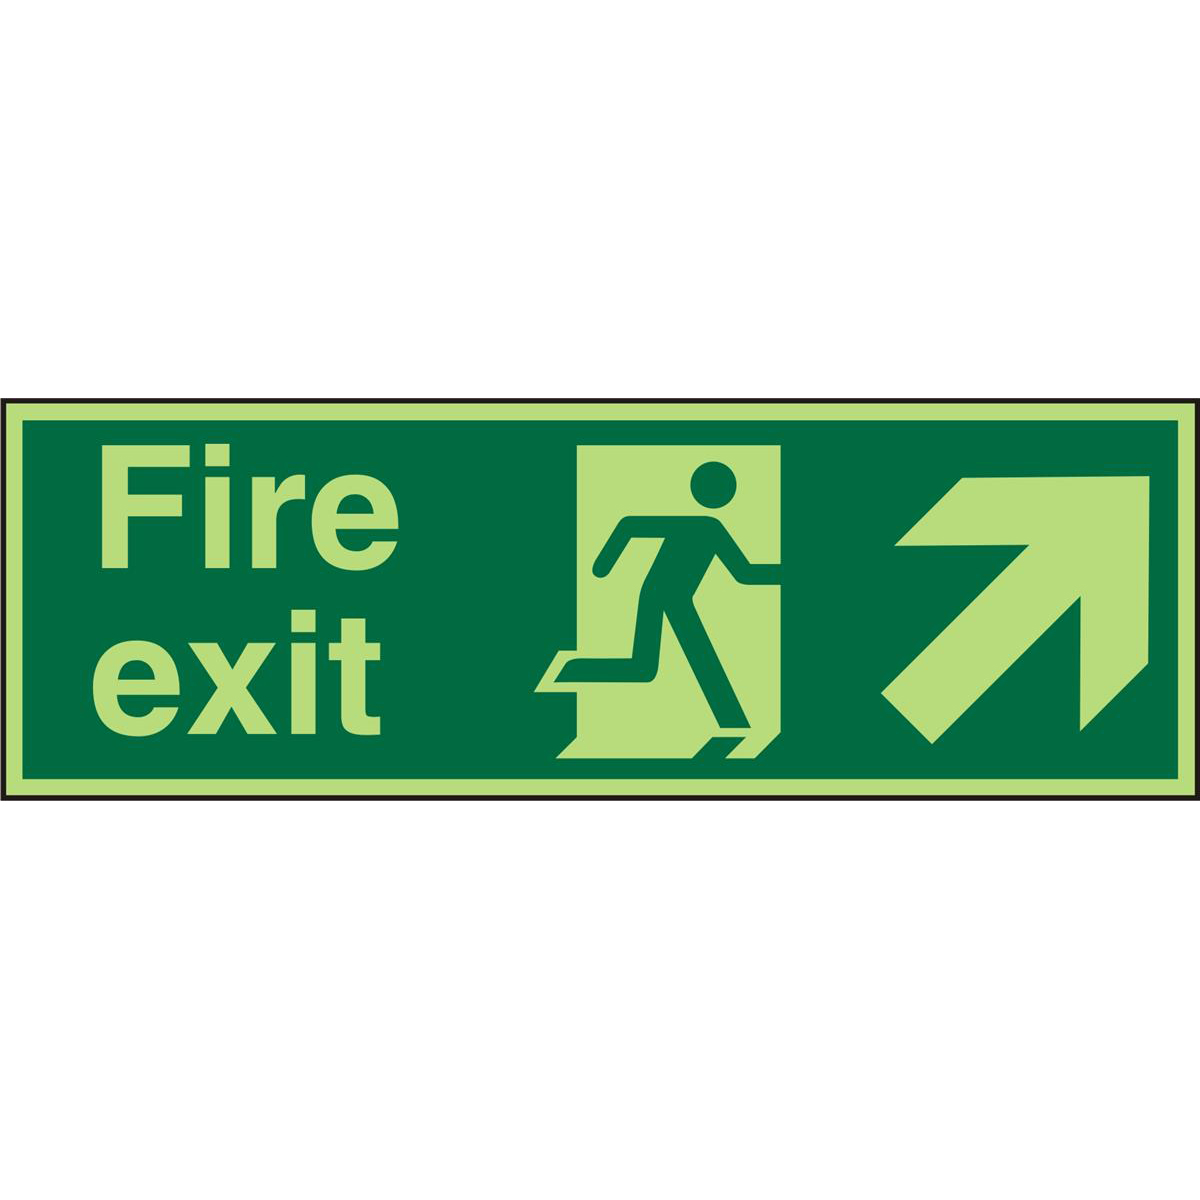 PhotolumSign 600x200 1mm FireExit Man Running Right&Arrow Ref PSP316SRP600x200 Up to 10 Day Leadtime